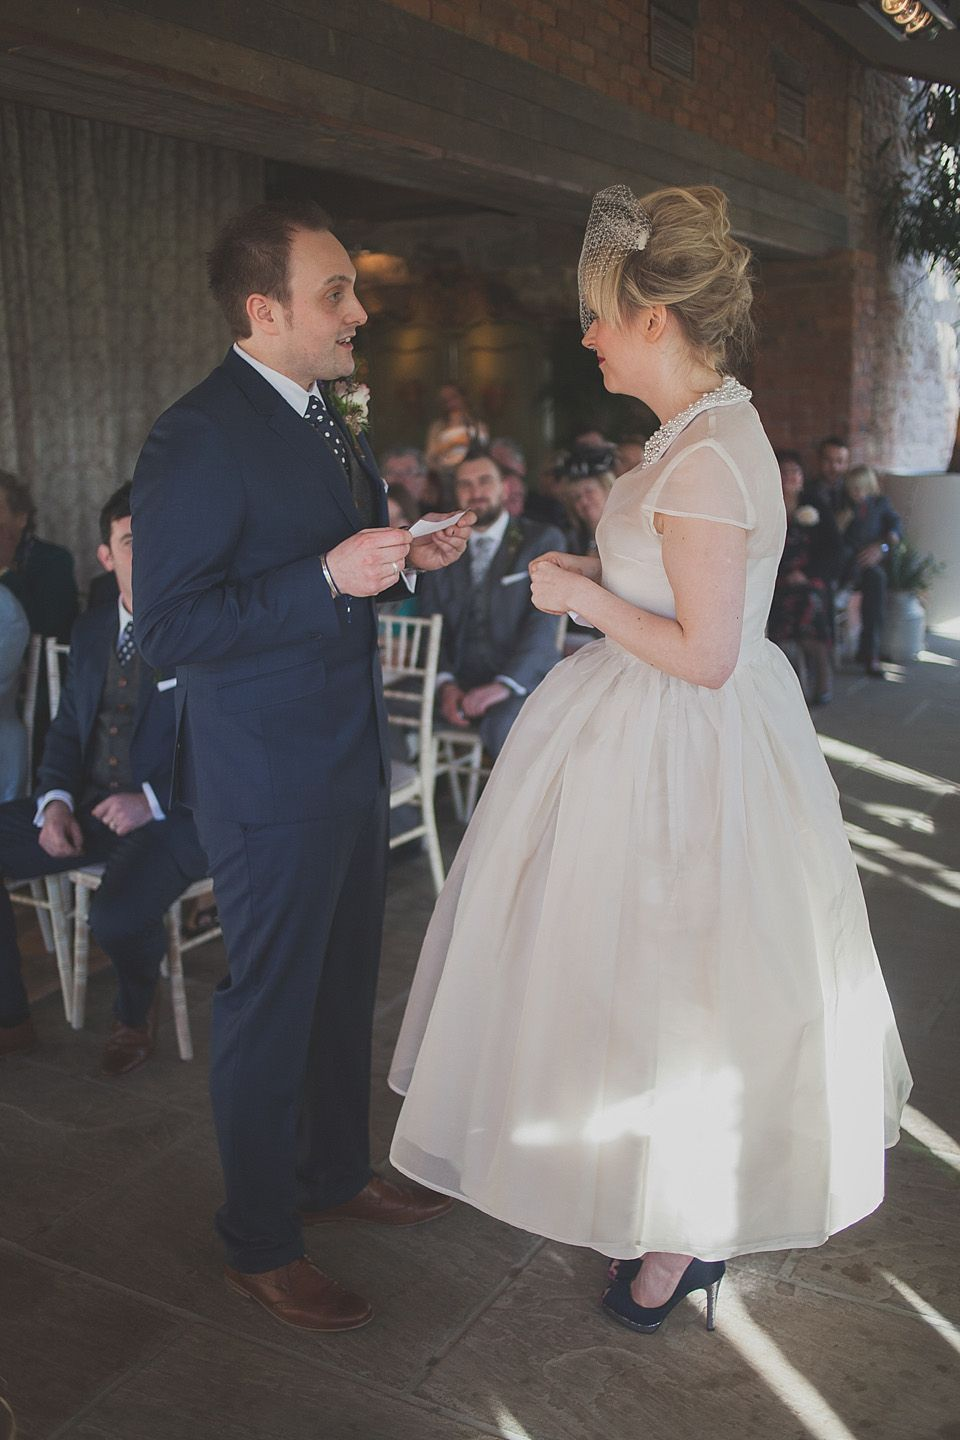 A Pretty Peter Pan Collar Wedding Dress | Pinterest | Wedding dress ...